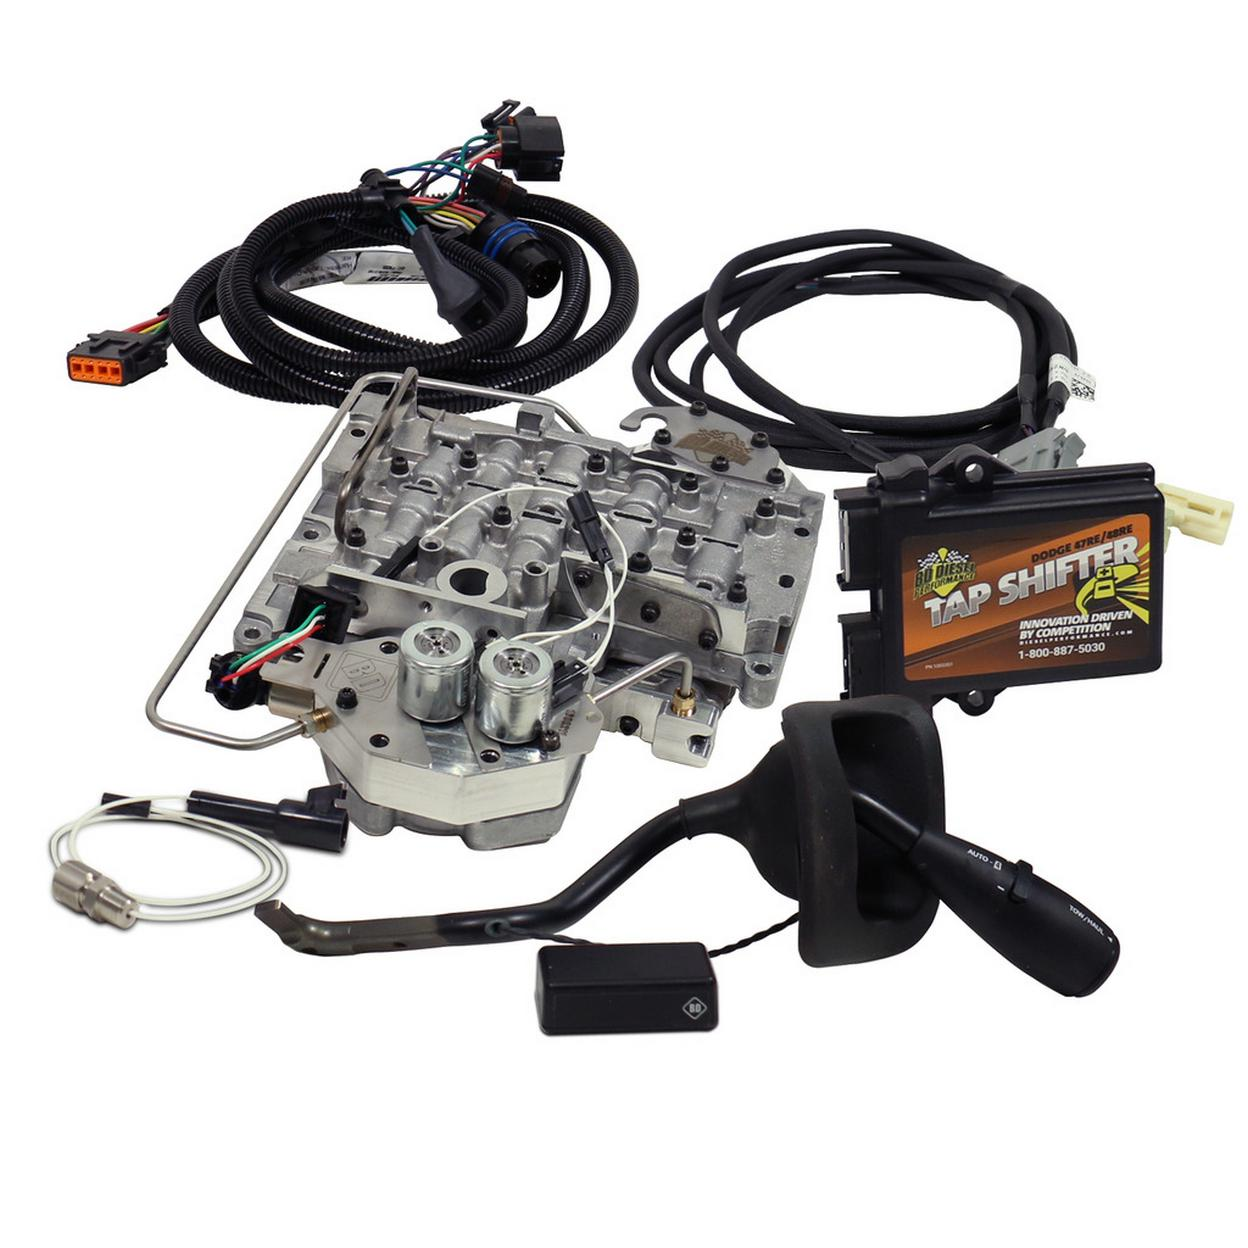 BD 48RE TapShifter comes with Valve Body Dodge 2003-2007